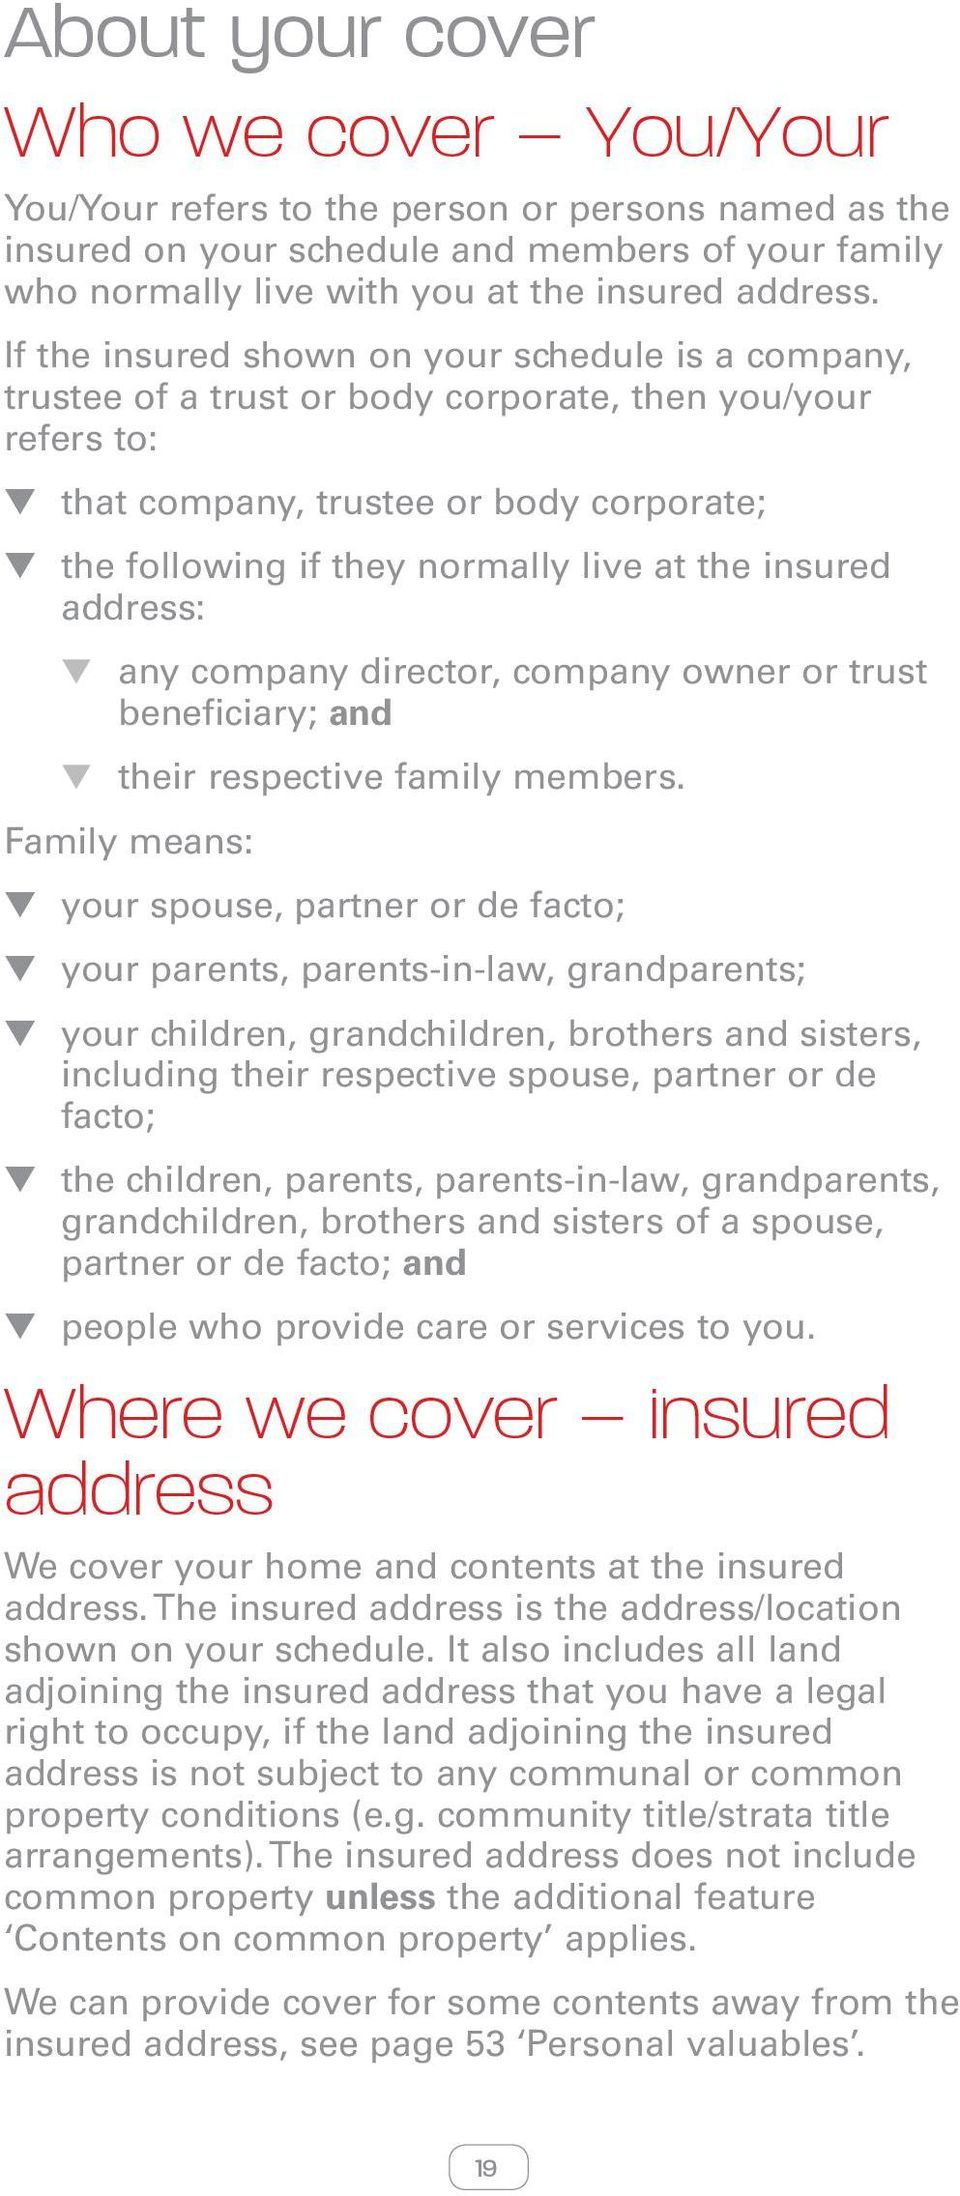 insured address: any company director, company owner or trust beneficiary; and their respective family members.